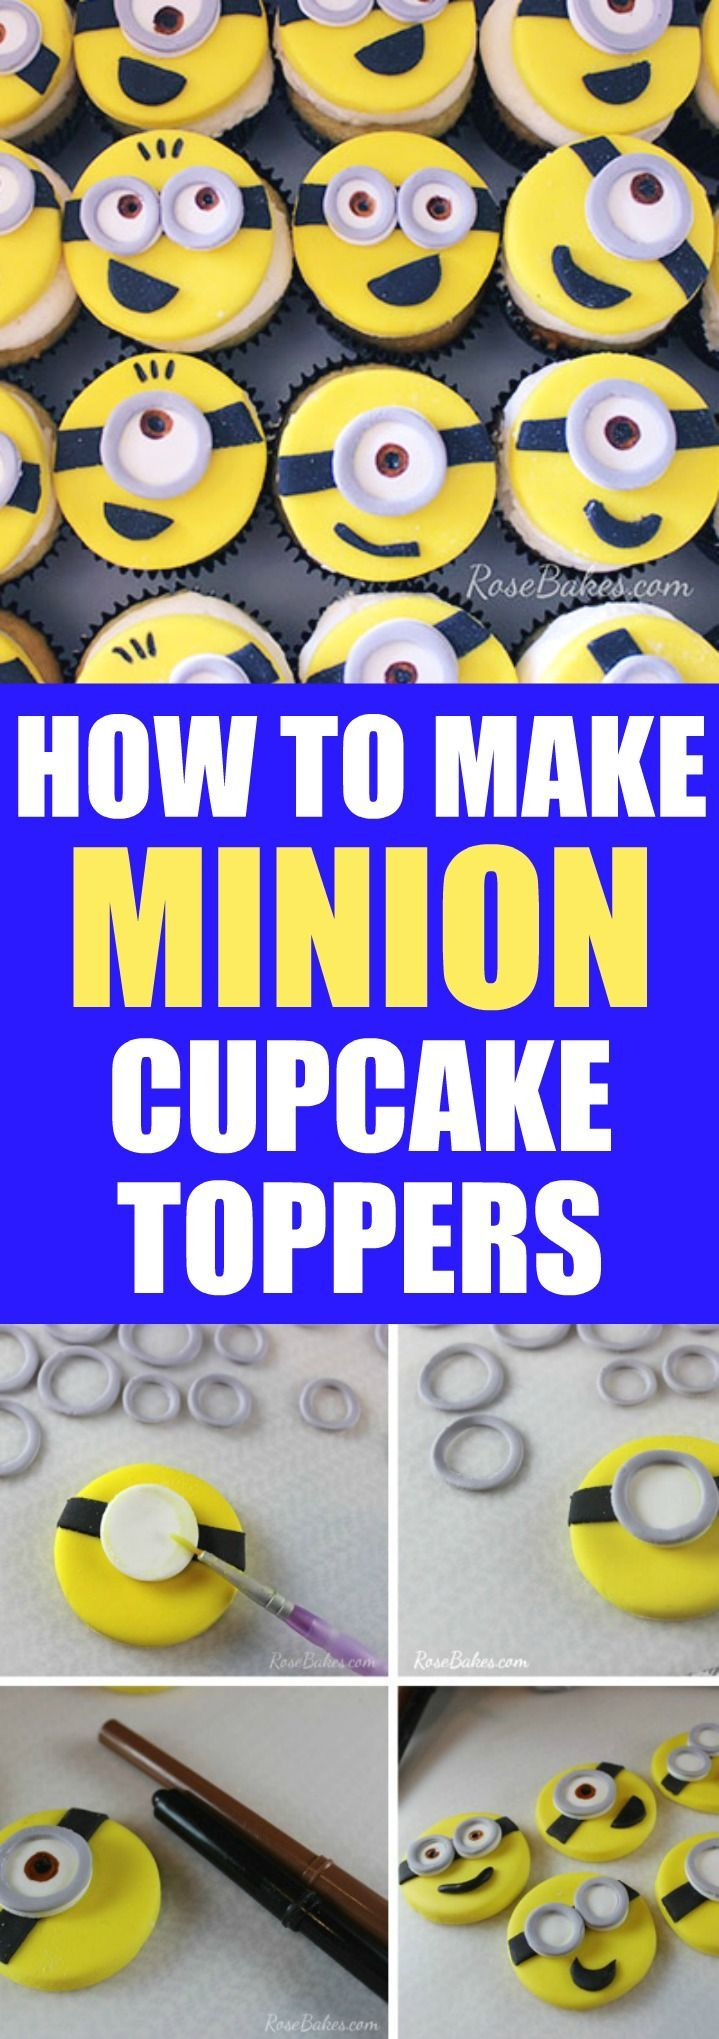 How to Make Minion Cupcake Toppers - click over to Rose Bakes for a full tutorial on making Dispicable Me Minion Cupcake Toppers! They're easy and so cute